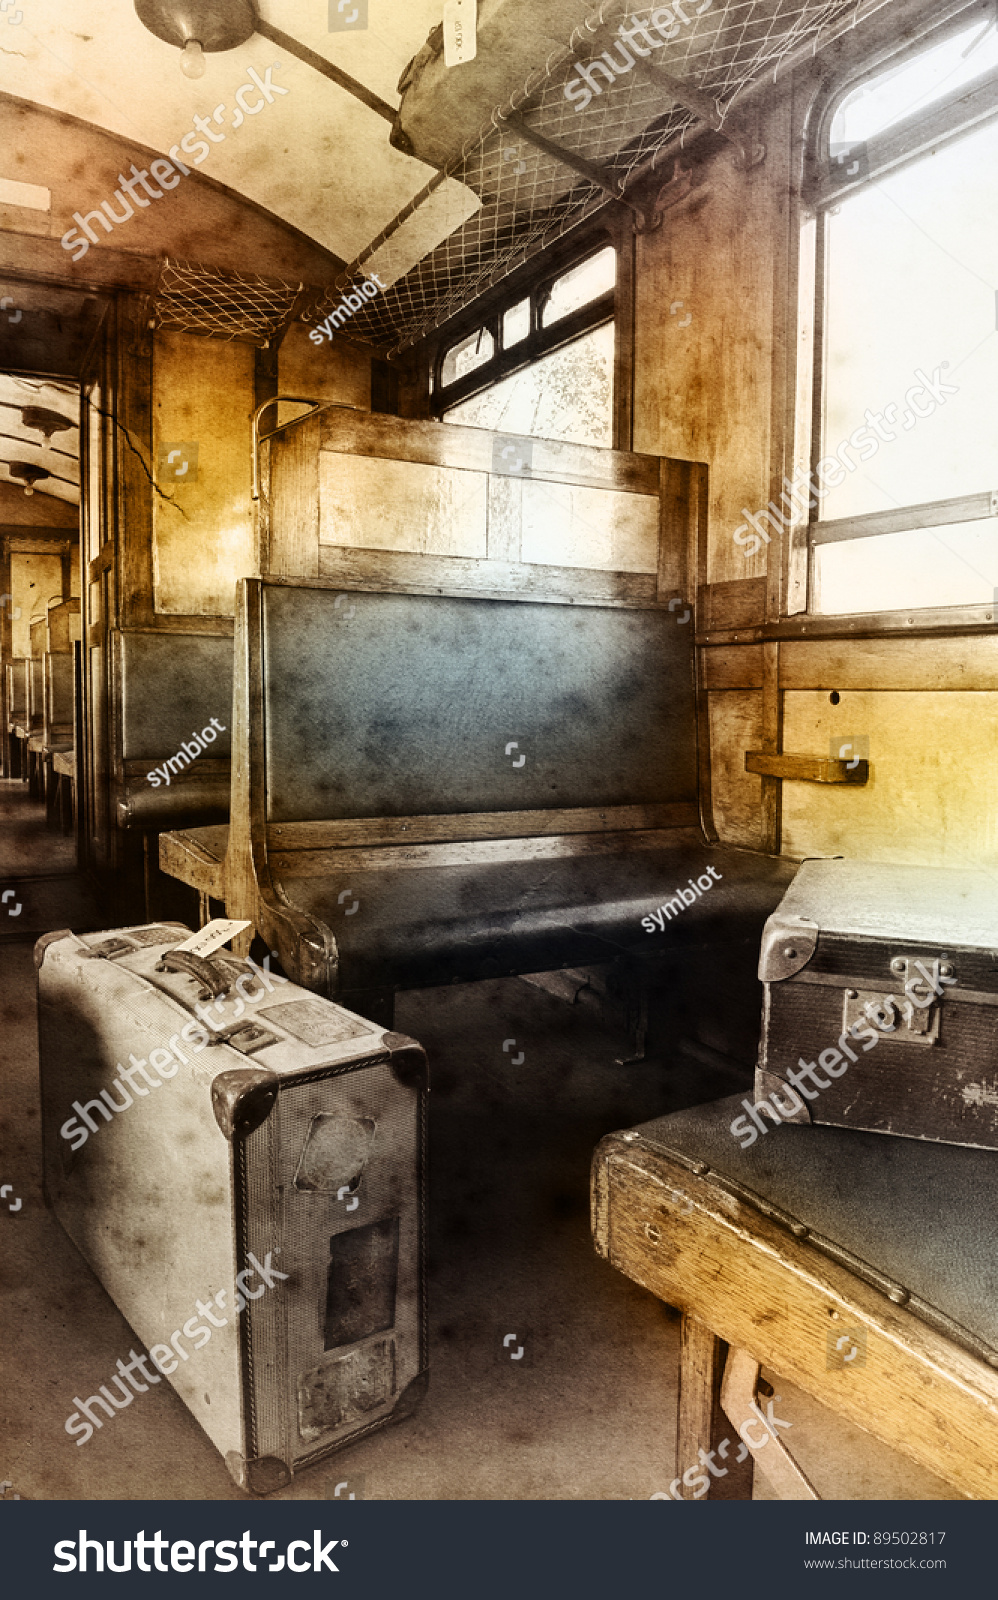 last century rail car interior passenger carriage stock photo 89502817 shutterstock. Black Bedroom Furniture Sets. Home Design Ideas